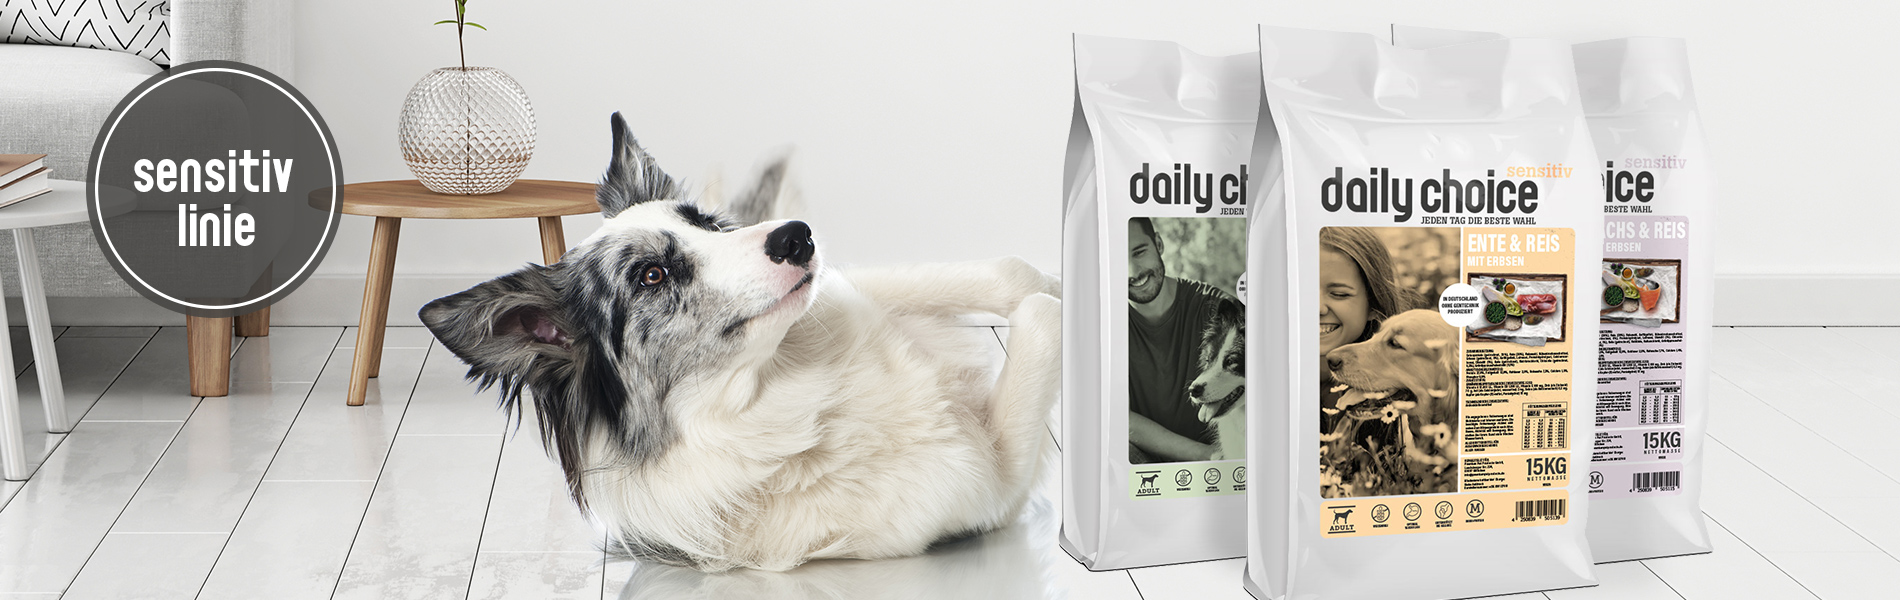 daily choice Hund Trockenfutter Sensitiv made in Germany